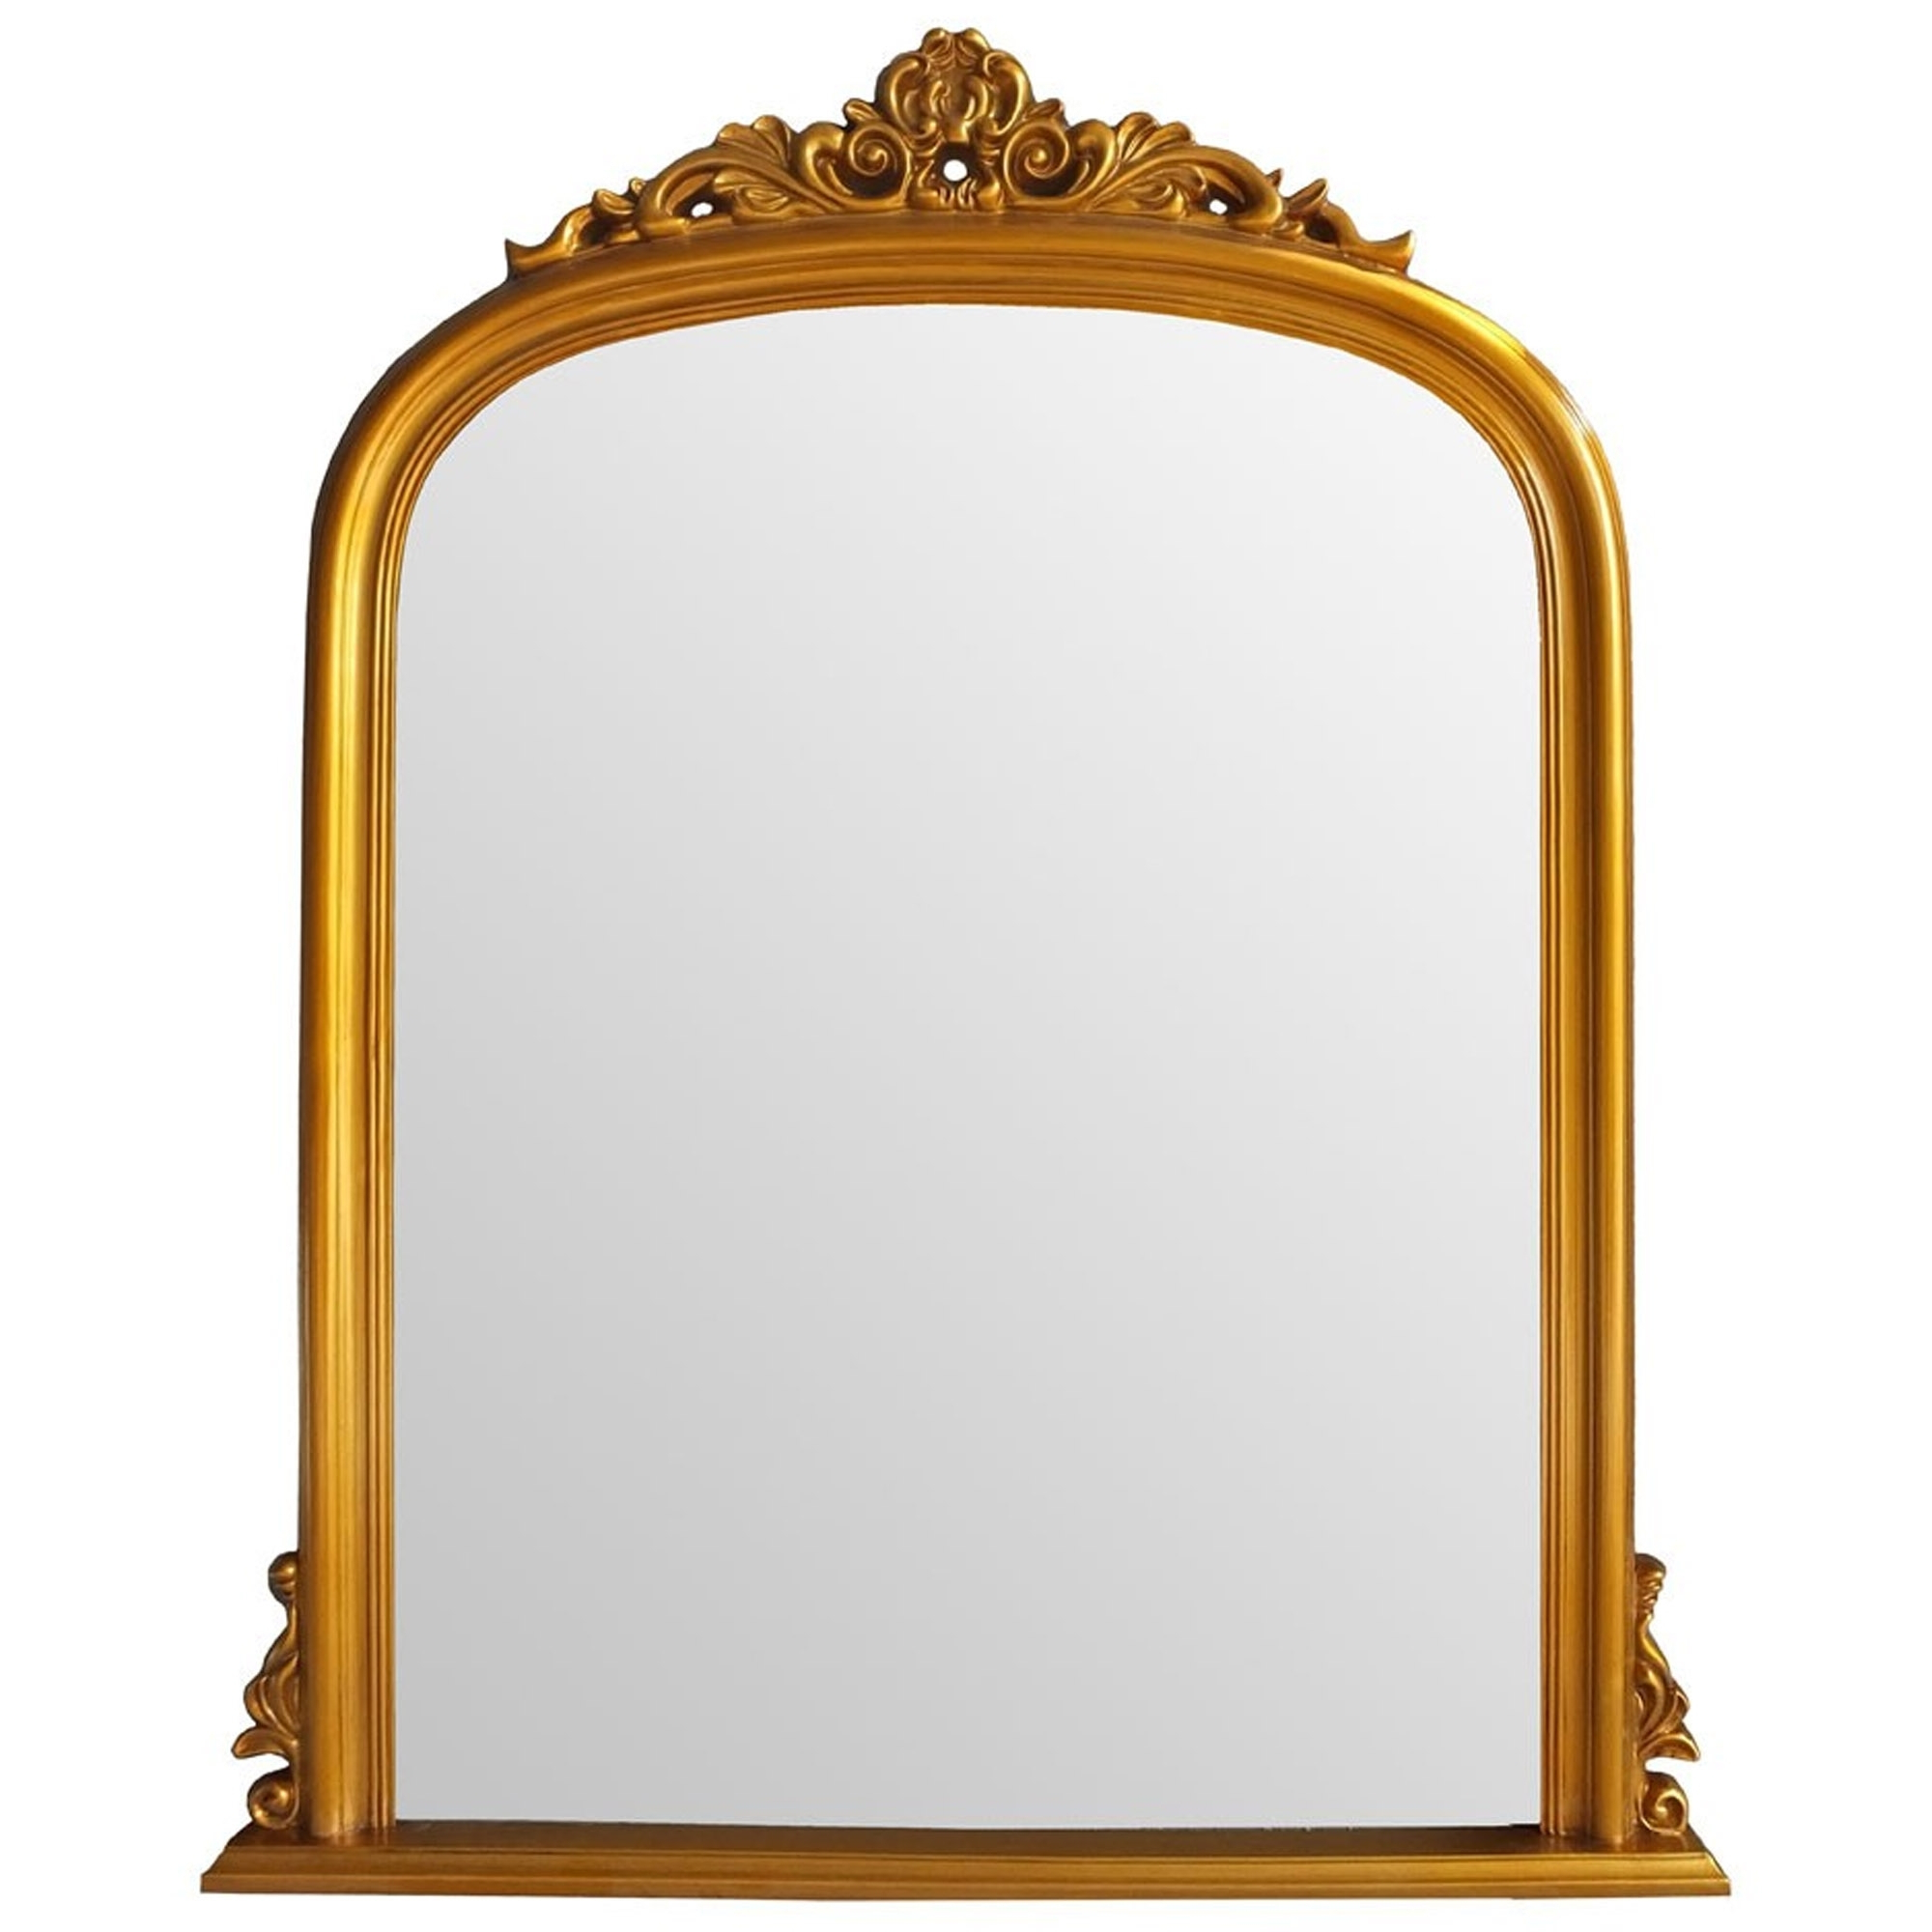 Latest Antique Gold Wall Mirrors With Regard To Antique French Style Gold Henrietta Wall Mirror (View 7 of 20)